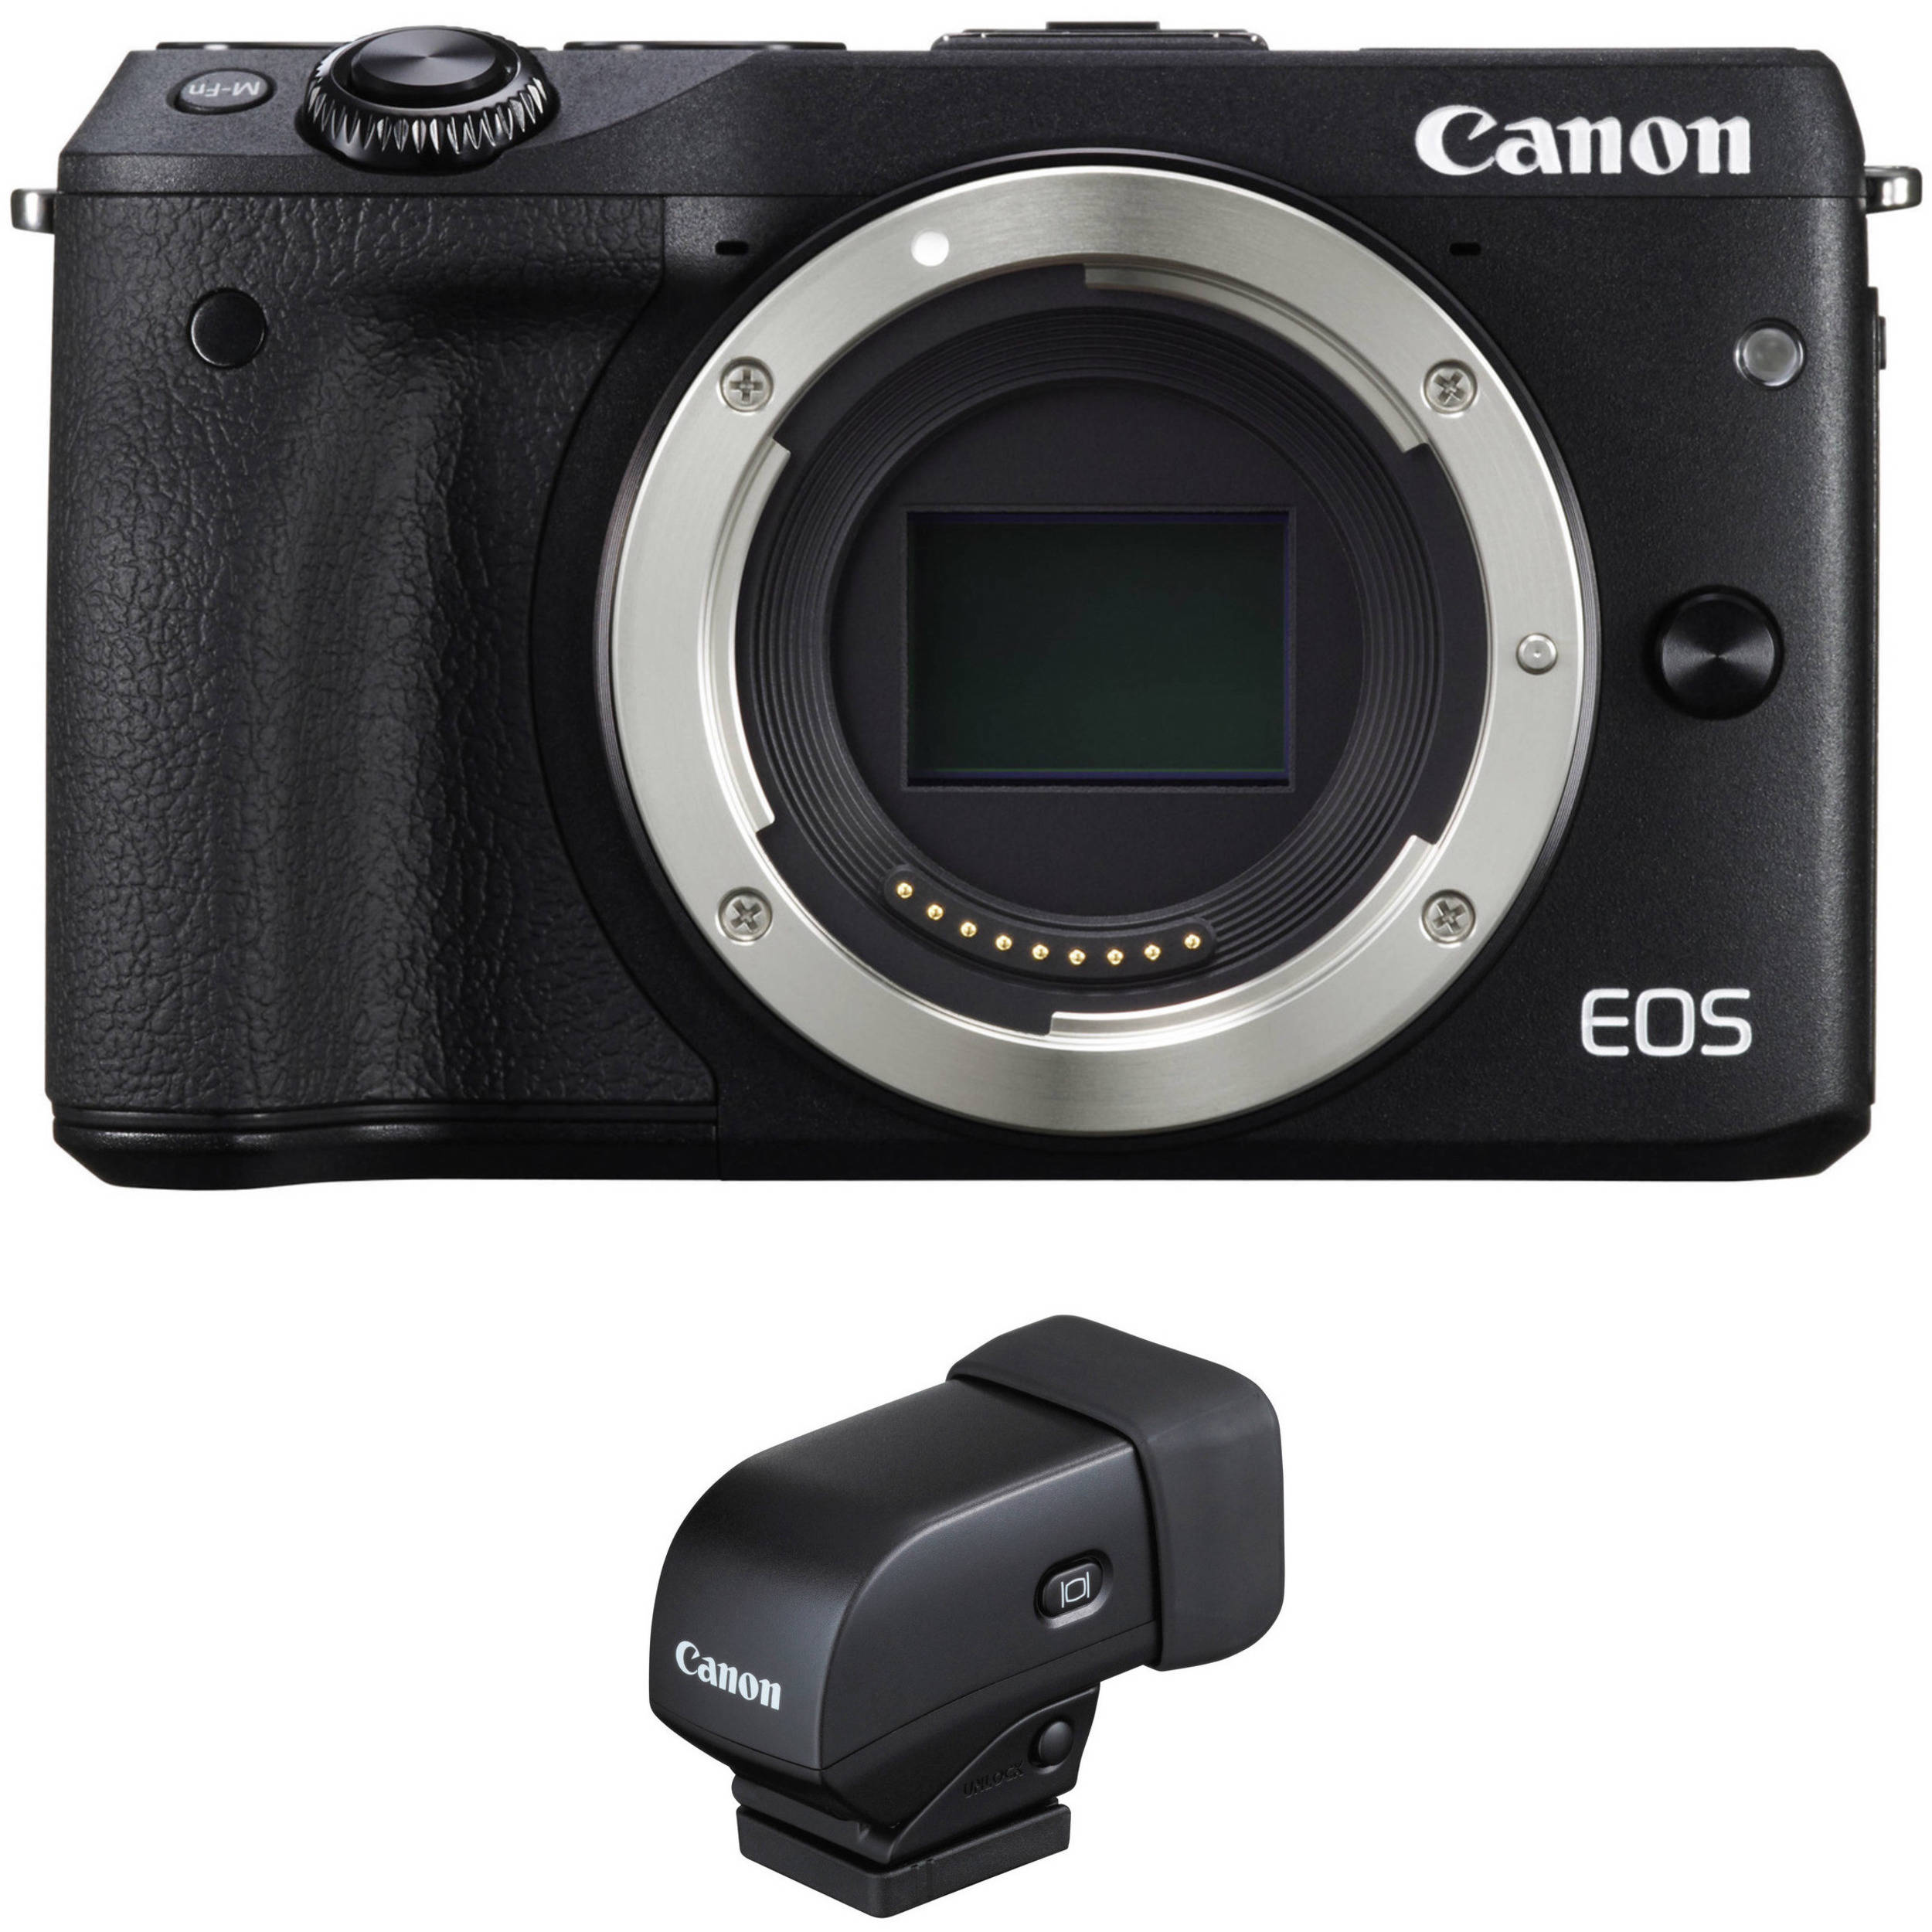 canon eos m3 mirrorless digital camera body with. Black Bedroom Furniture Sets. Home Design Ideas